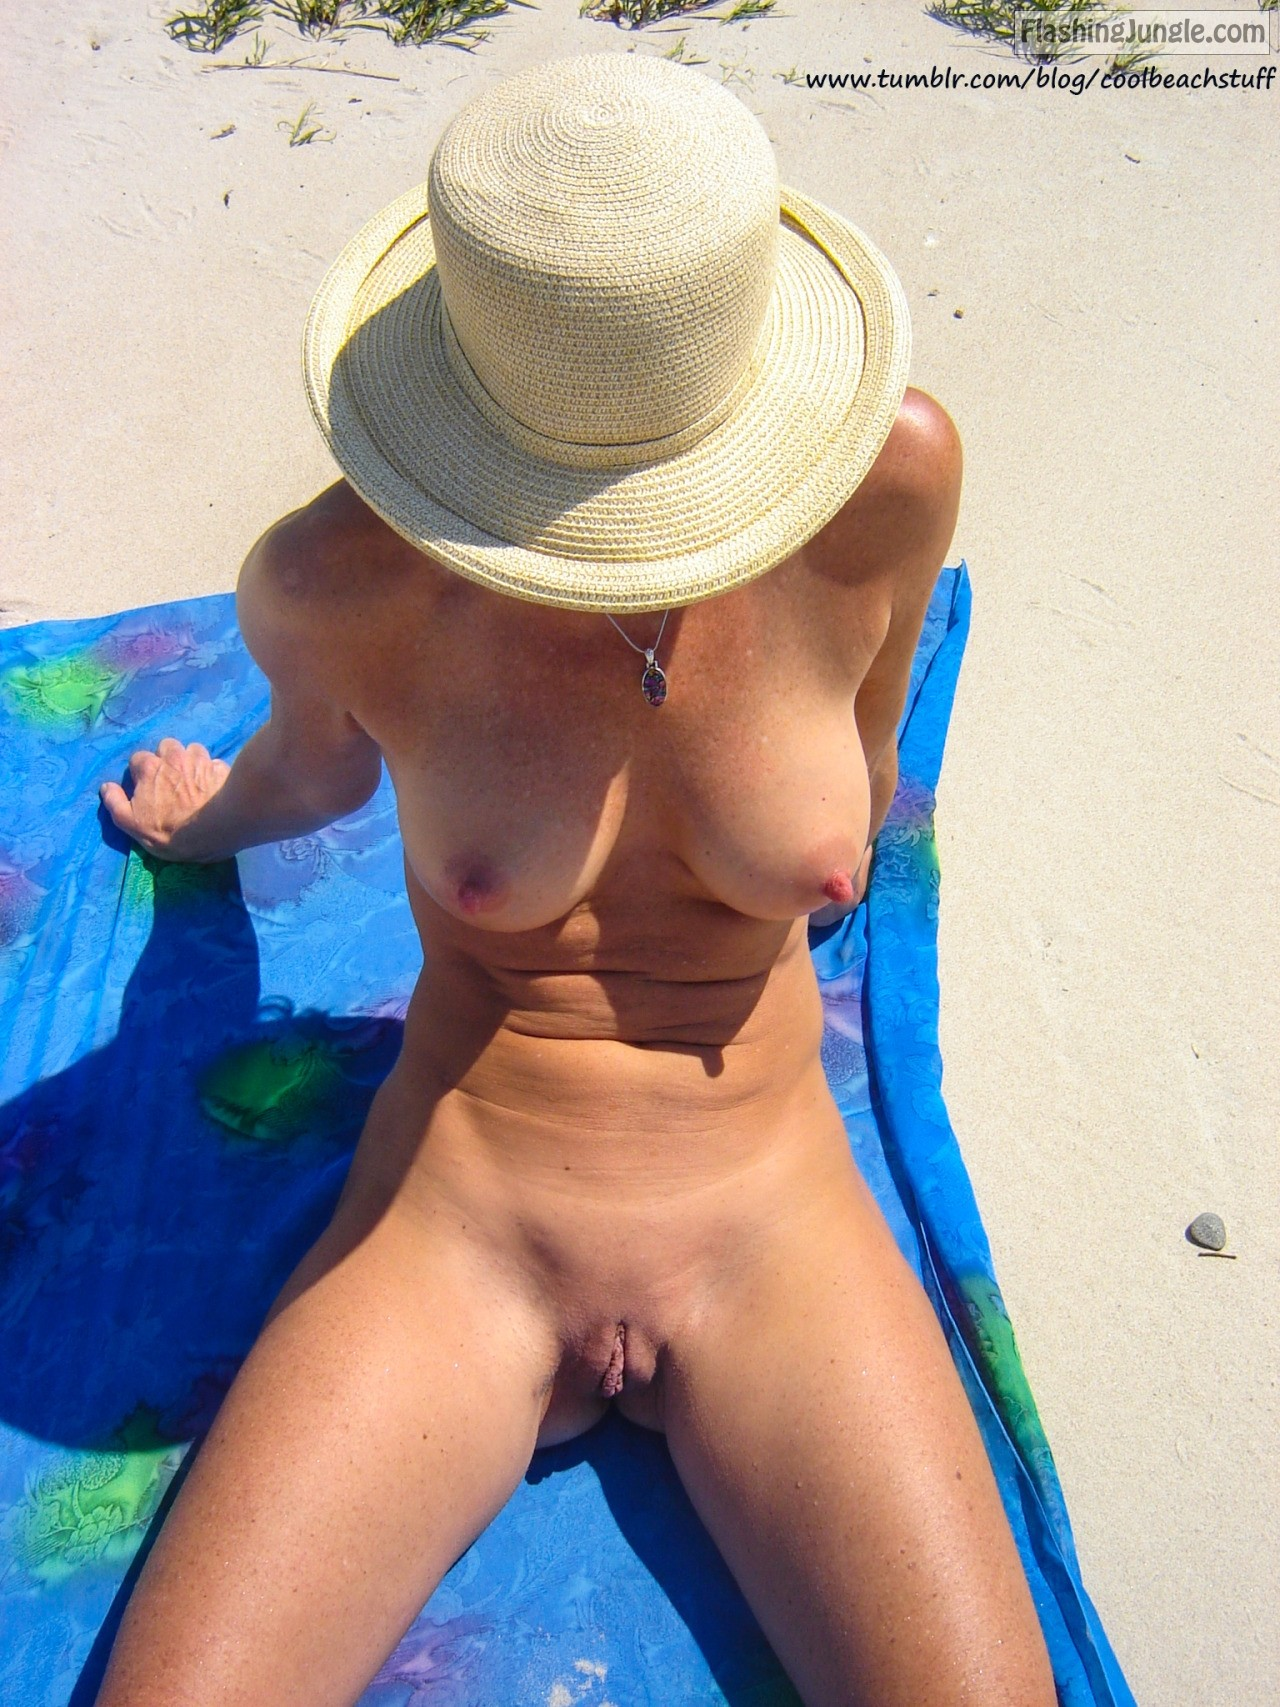 Flashing Jungle - Nude Beach Pics Exhibitionists Photos-5535